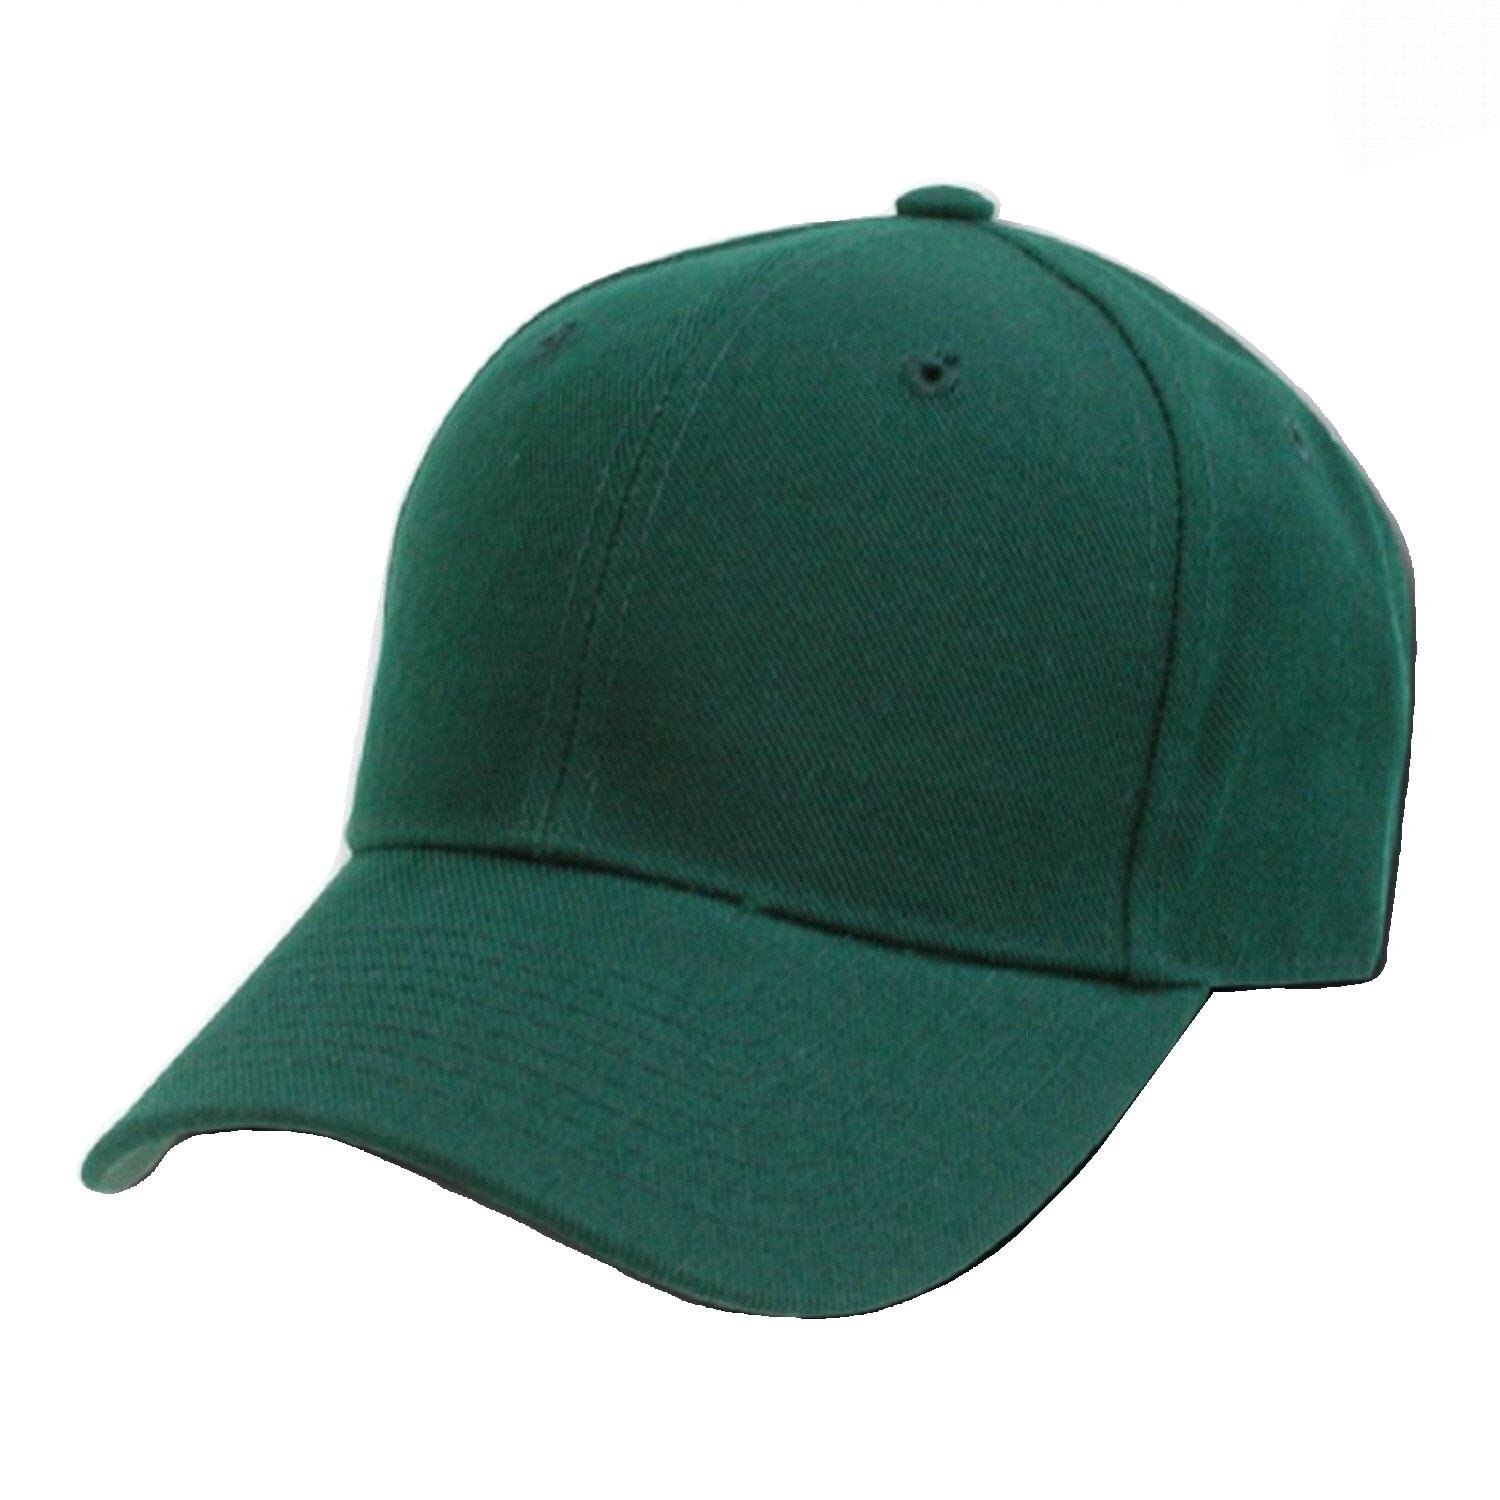 Decky Plain Solid Fitted Baseball Cap Forest Green (Size 7 1/8) by DECKY